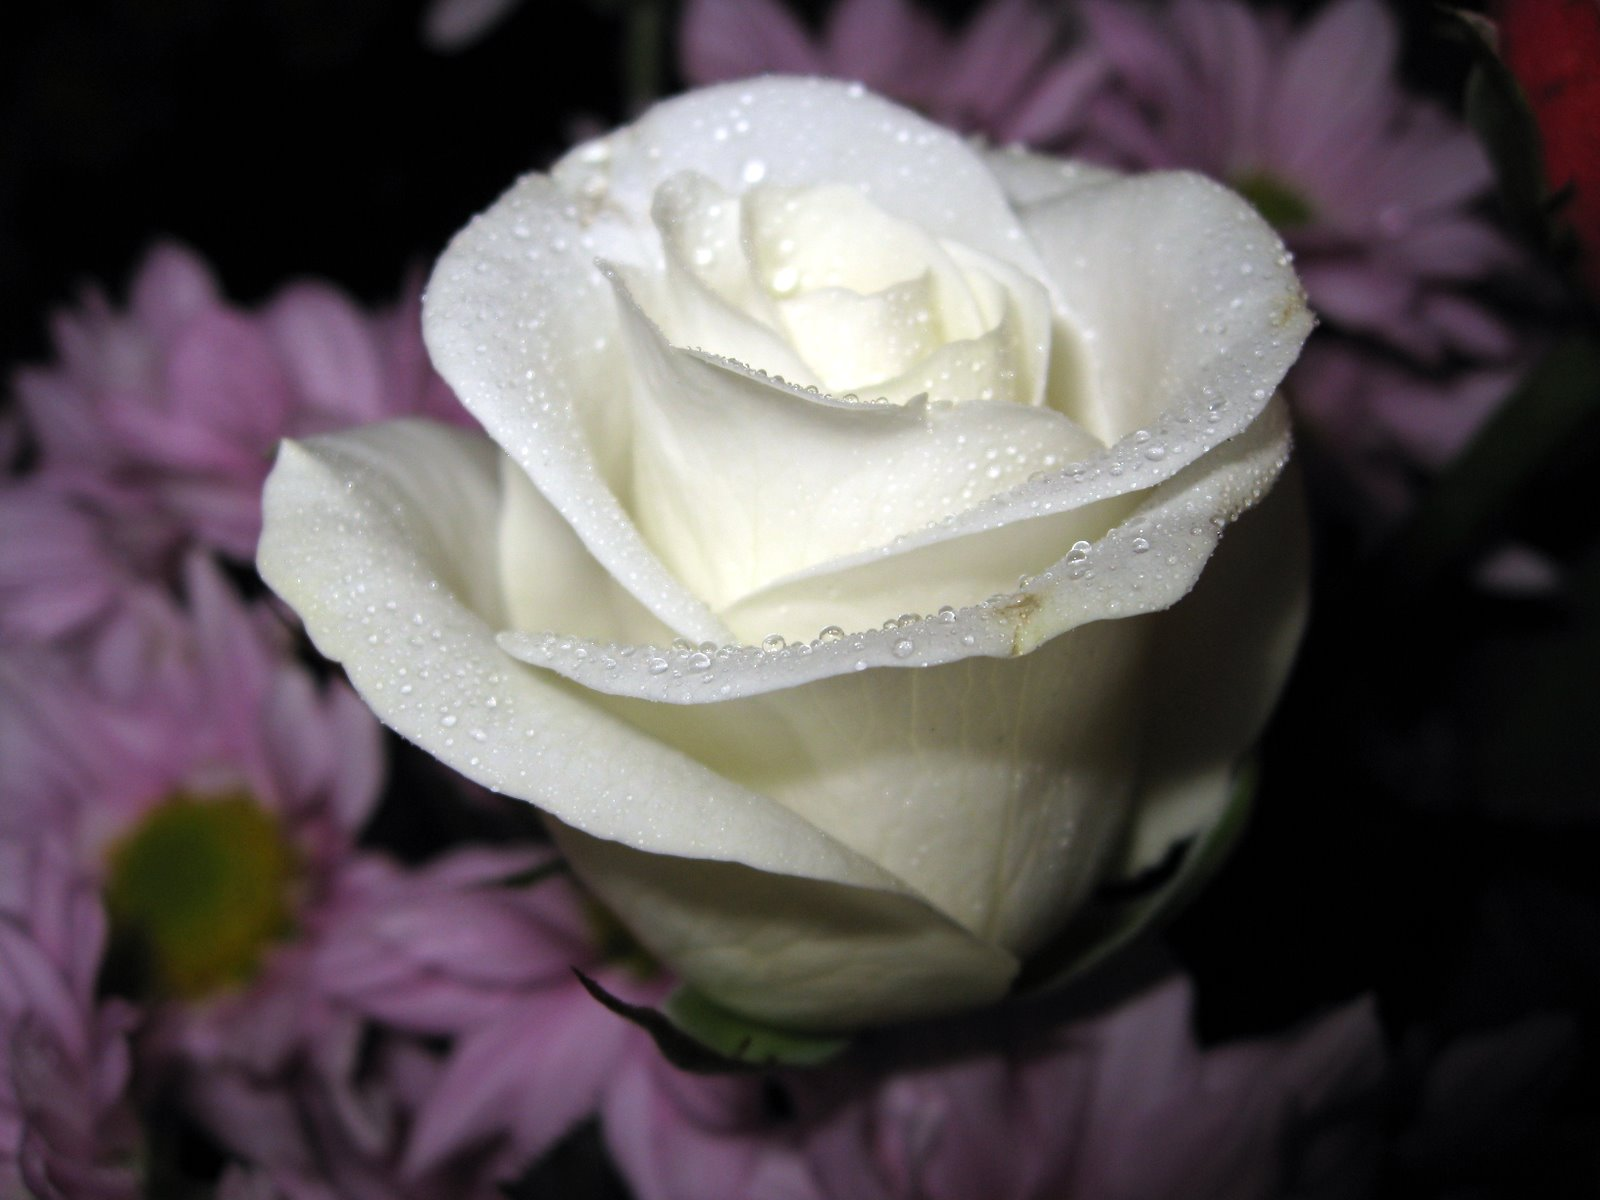 flowers for flower lovers.: White rose desktop hd wallpapers.